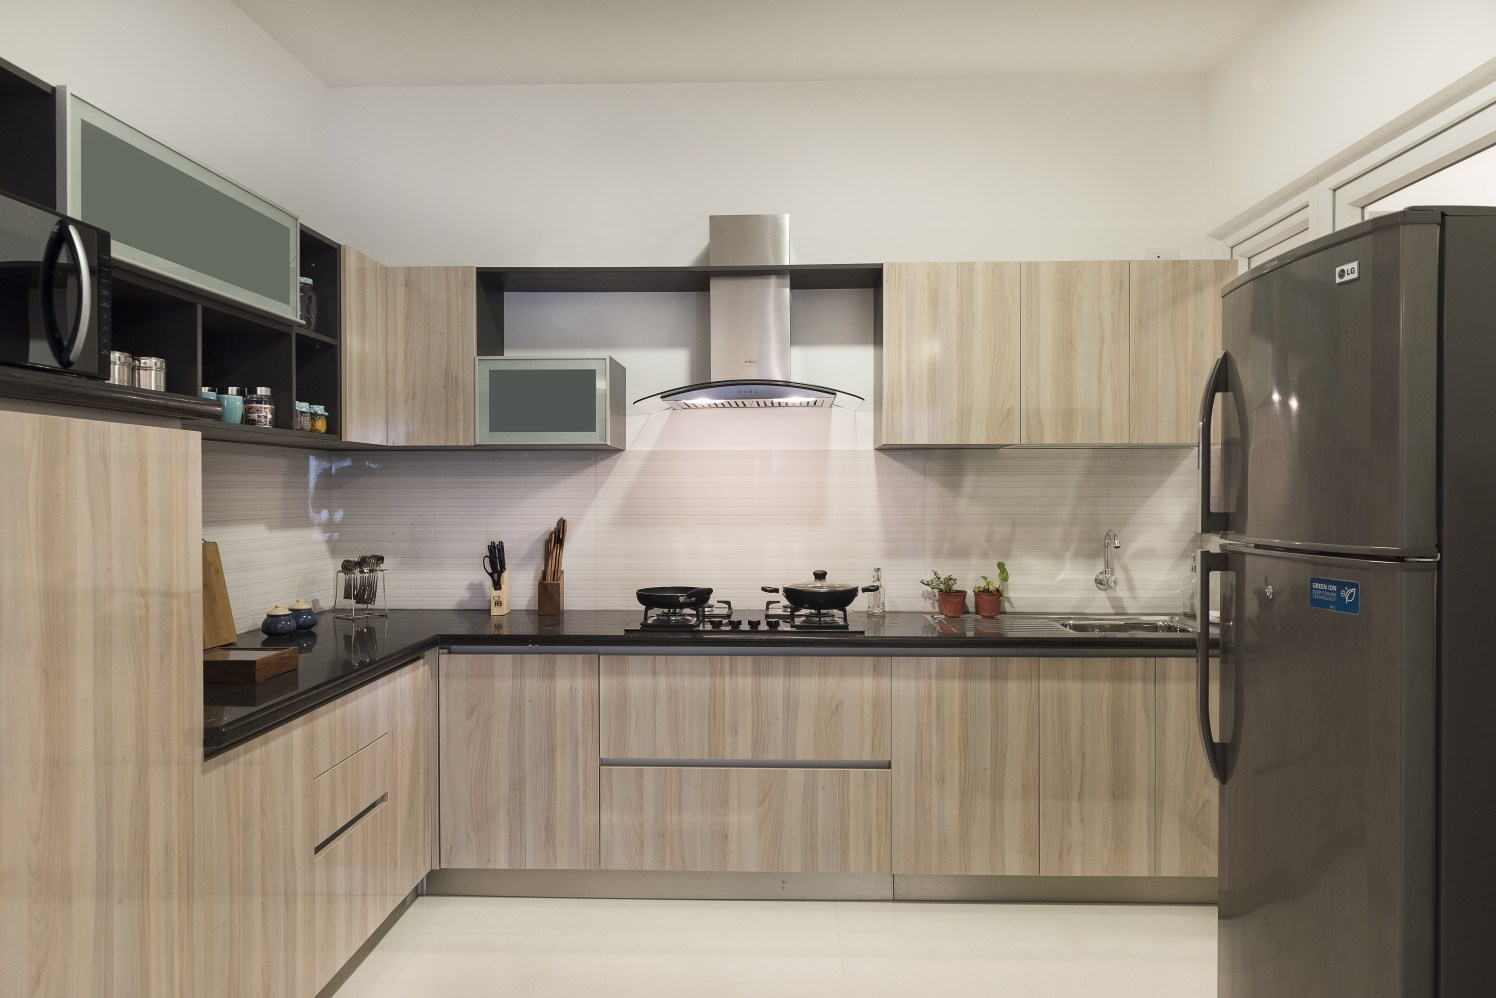 The Natural Splendor by HomeLane Modular-kitchen Modern | Interior Design Photos & Ideas